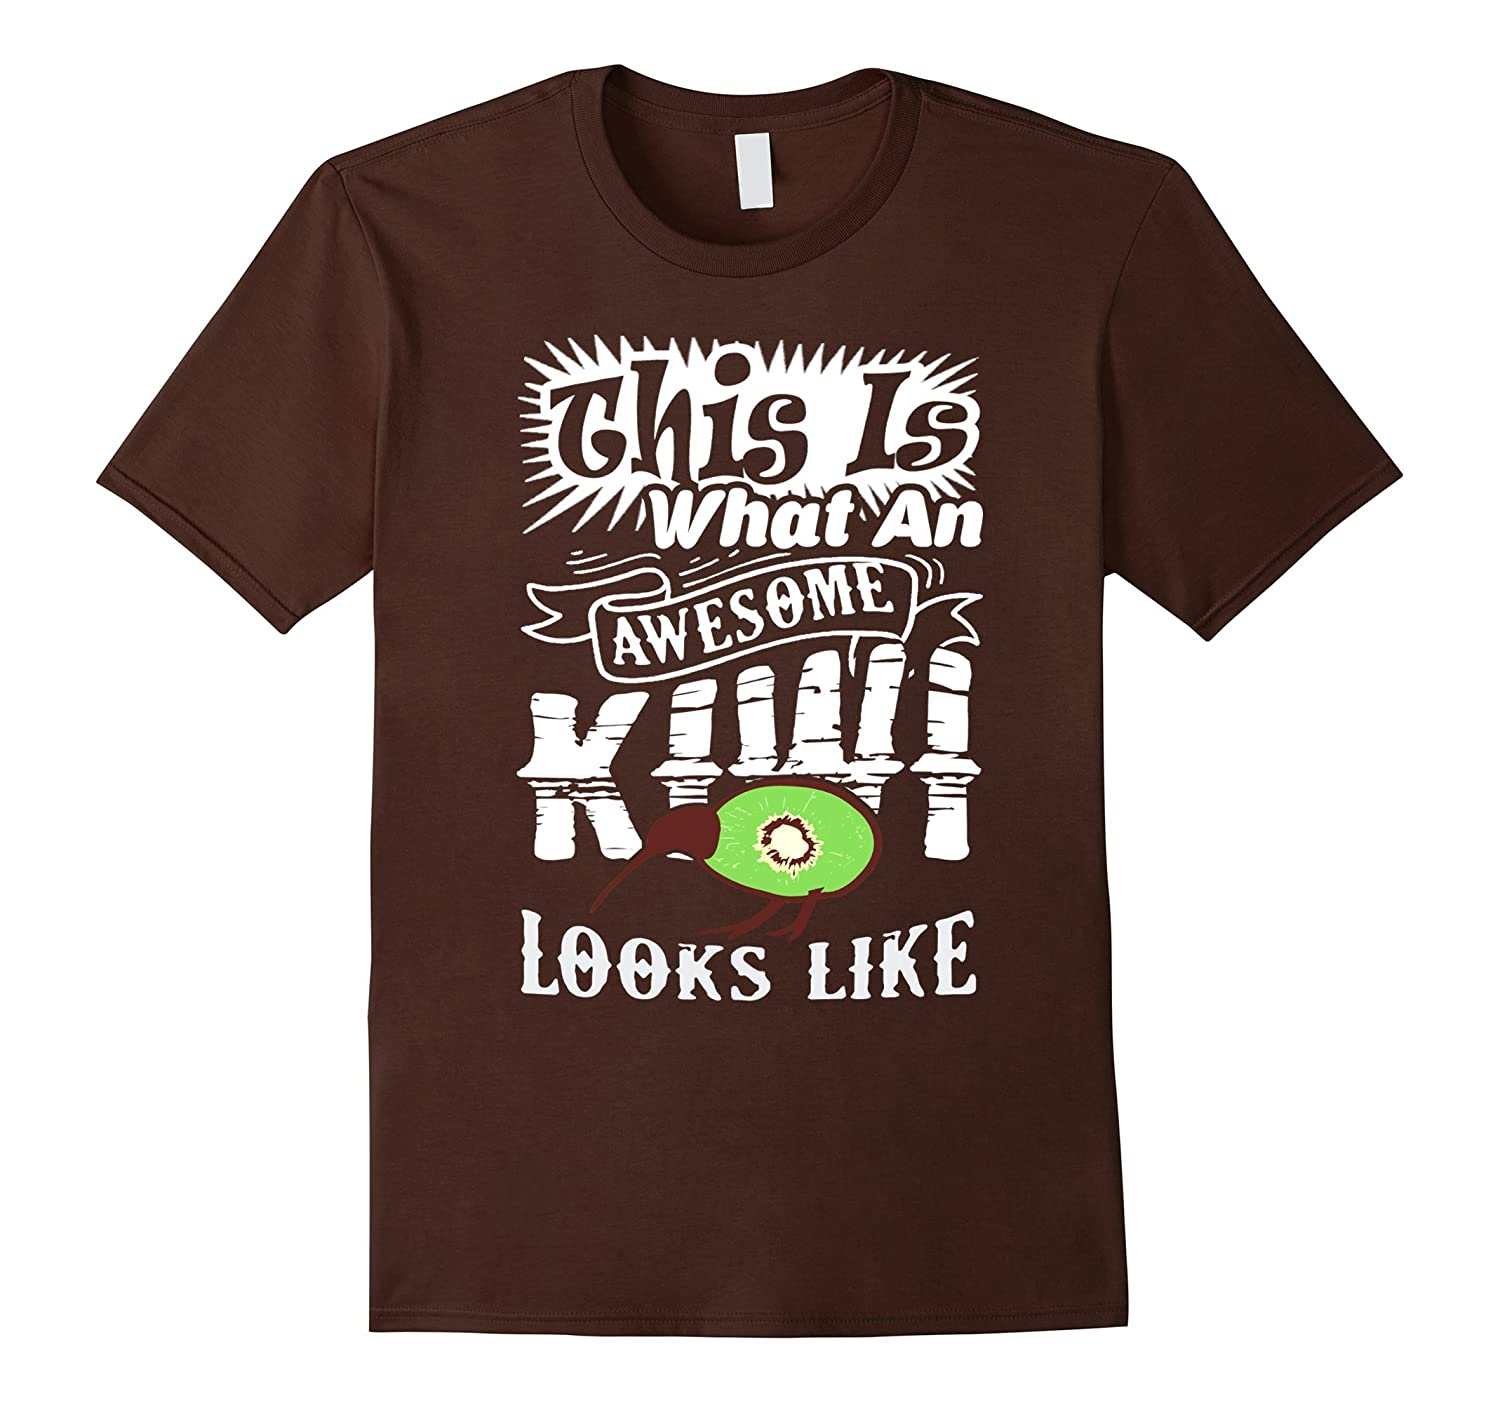 Kiwi Bird Tshirts - Awesome Kiwi Bird Shirt-AZP